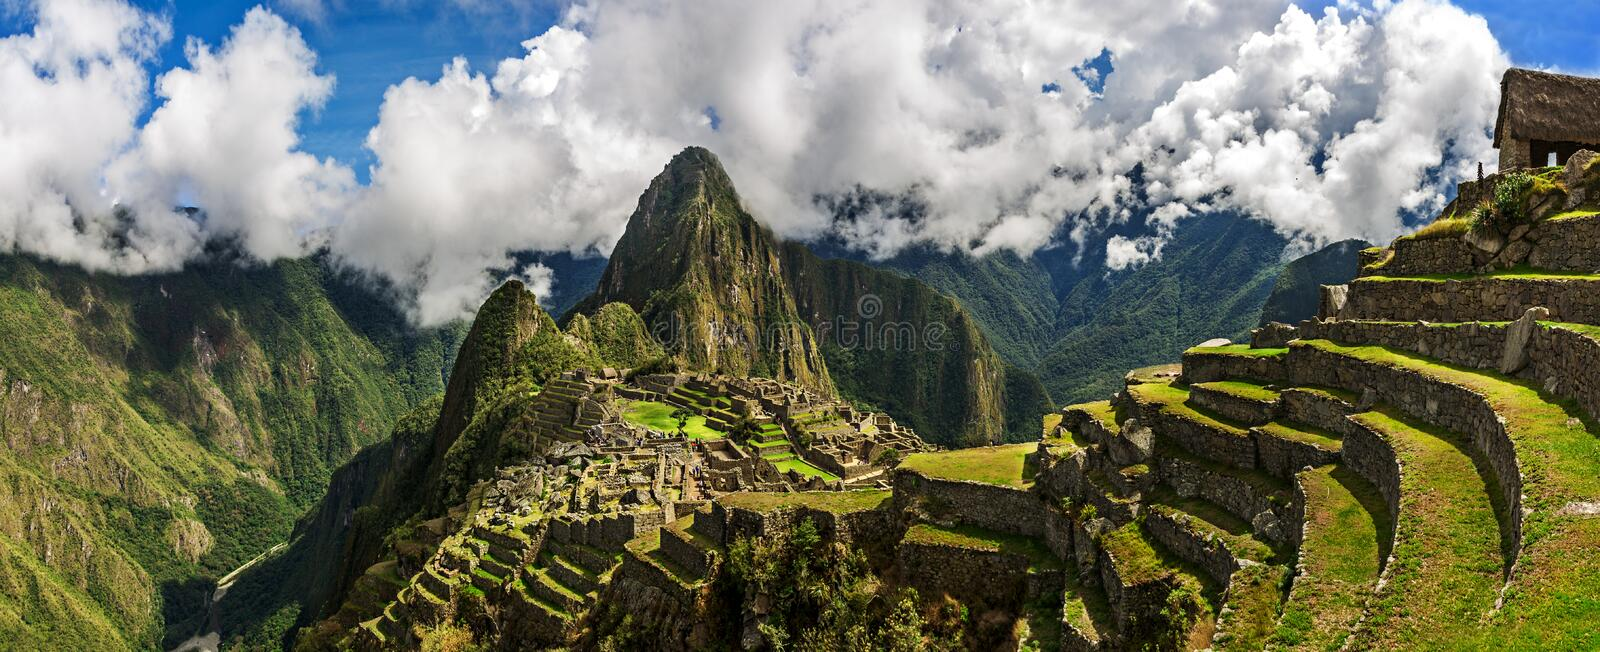 Picturesque panoramic view of terraces of Machu Picchu. Picturesque panoramic view of terraces of Machu Picchu royalty free stock images